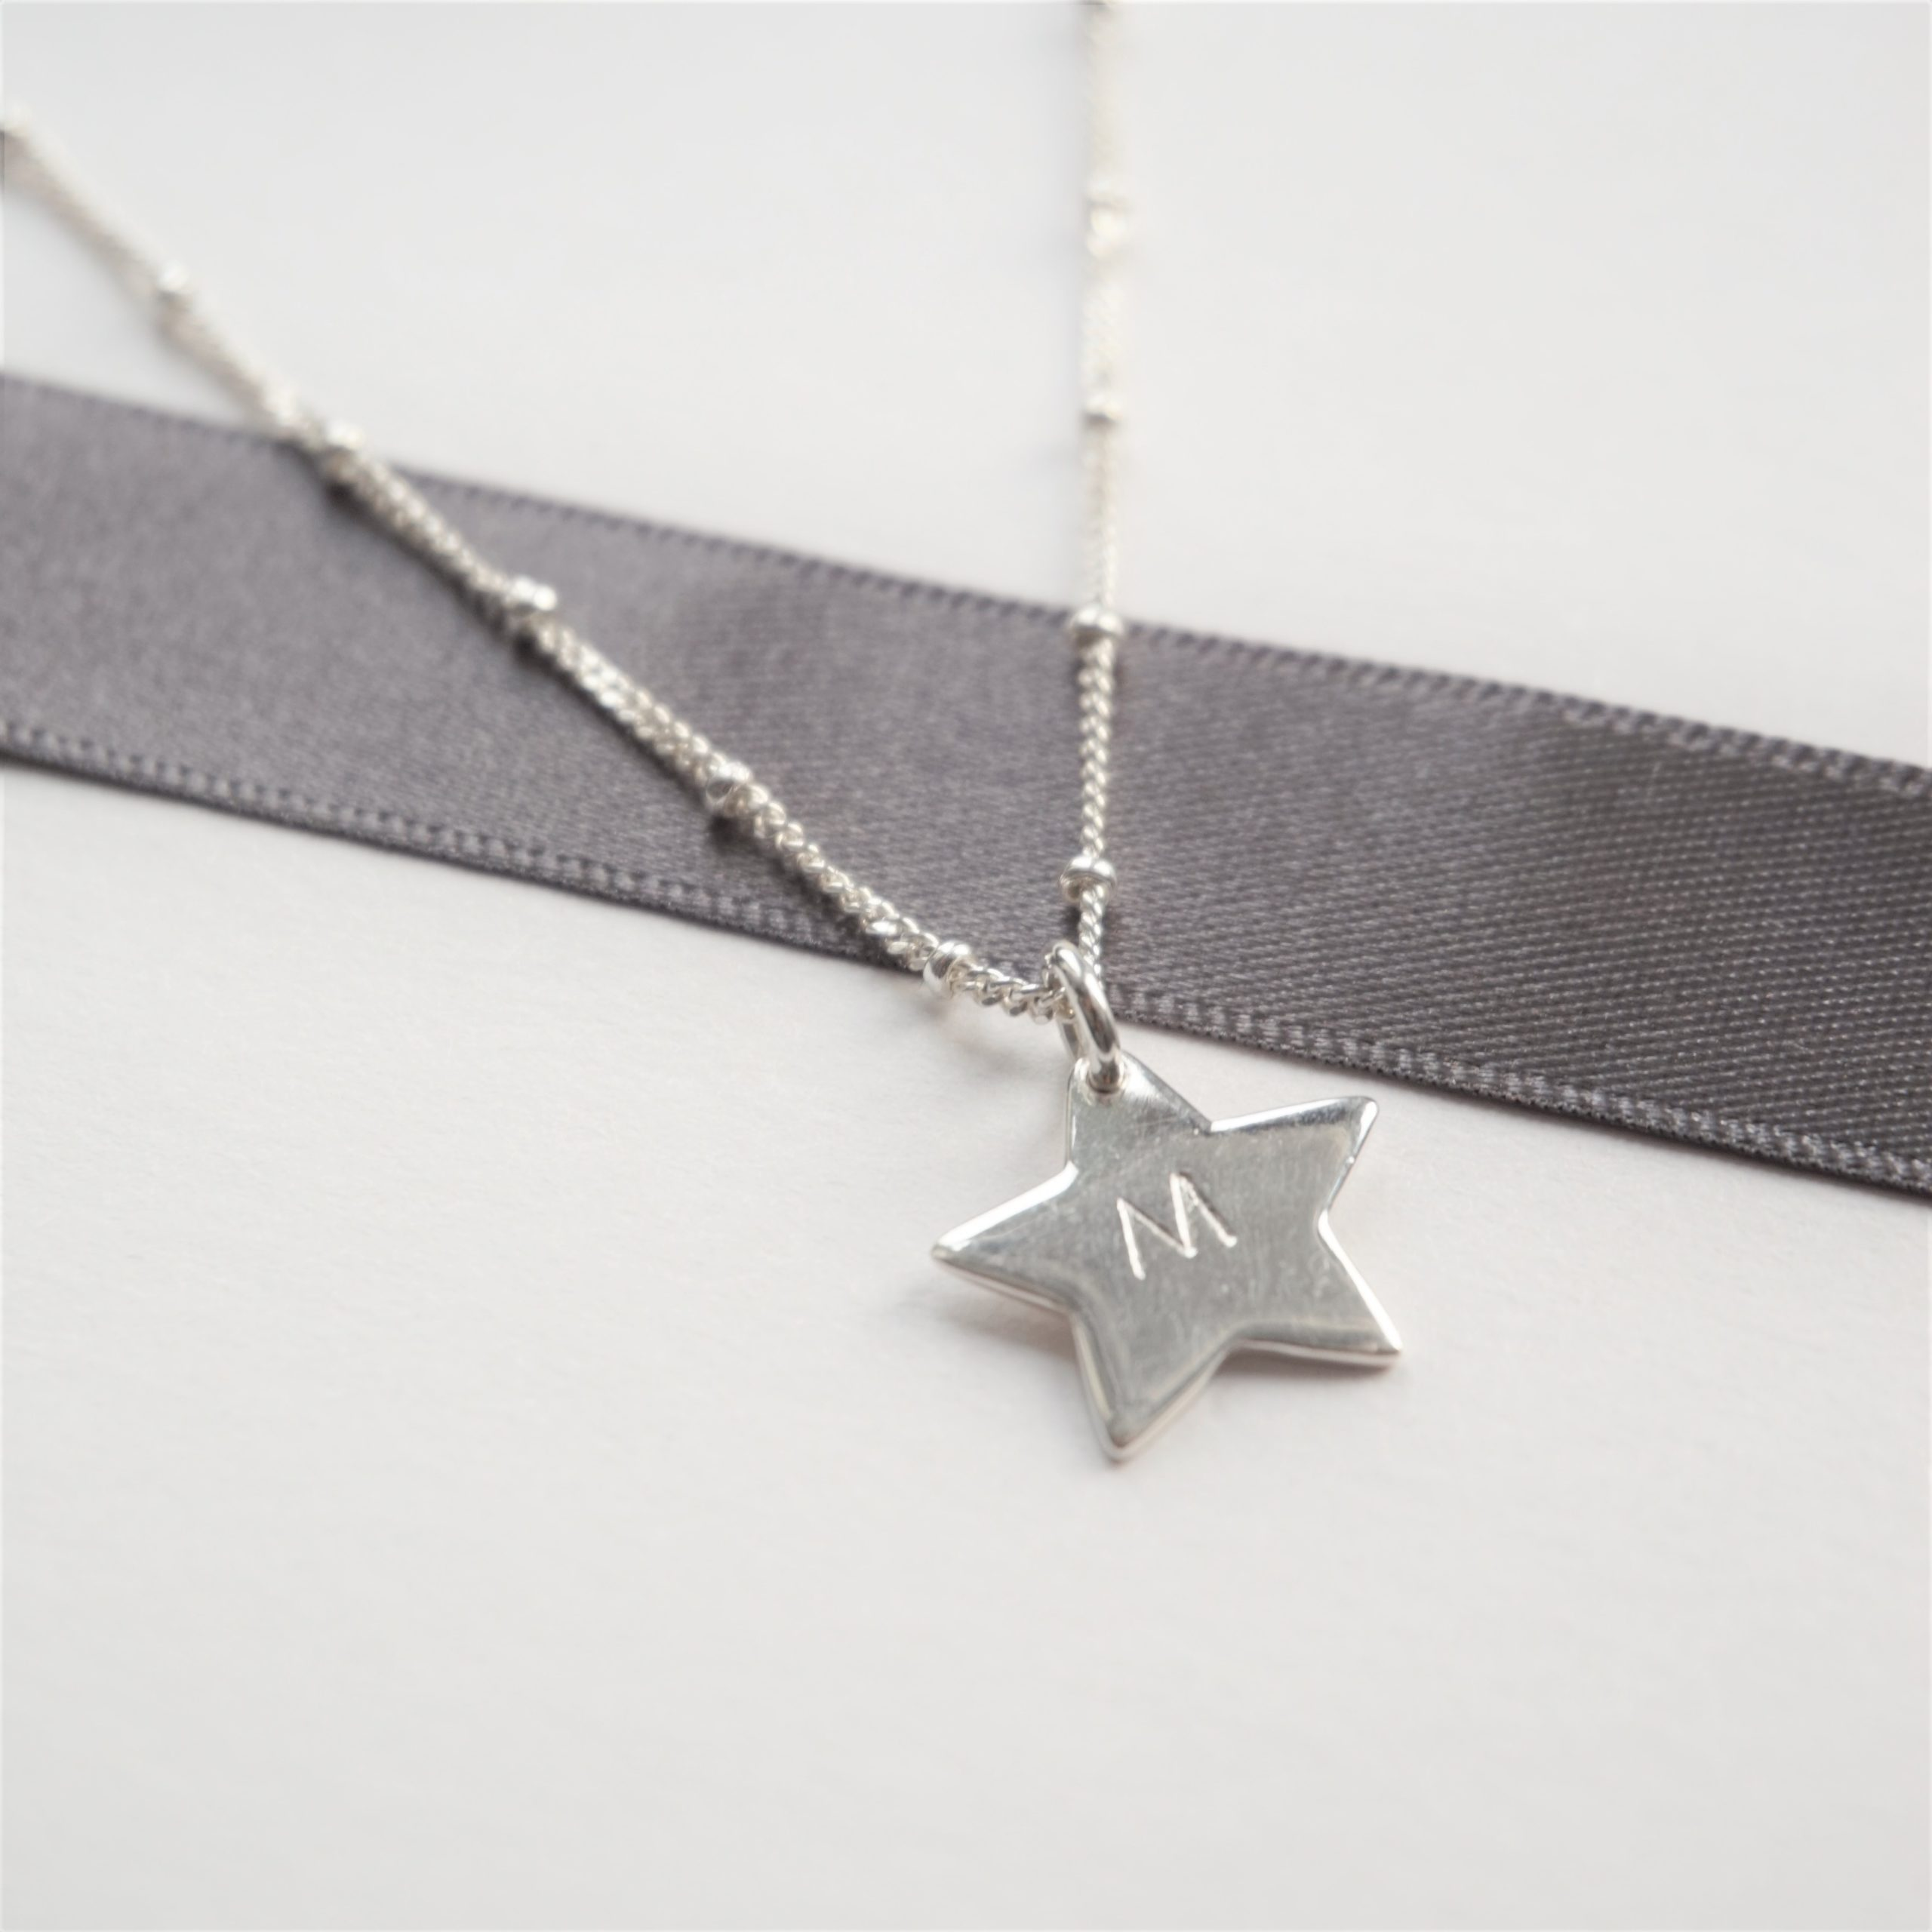 sterling silver necklace with stamped star charm